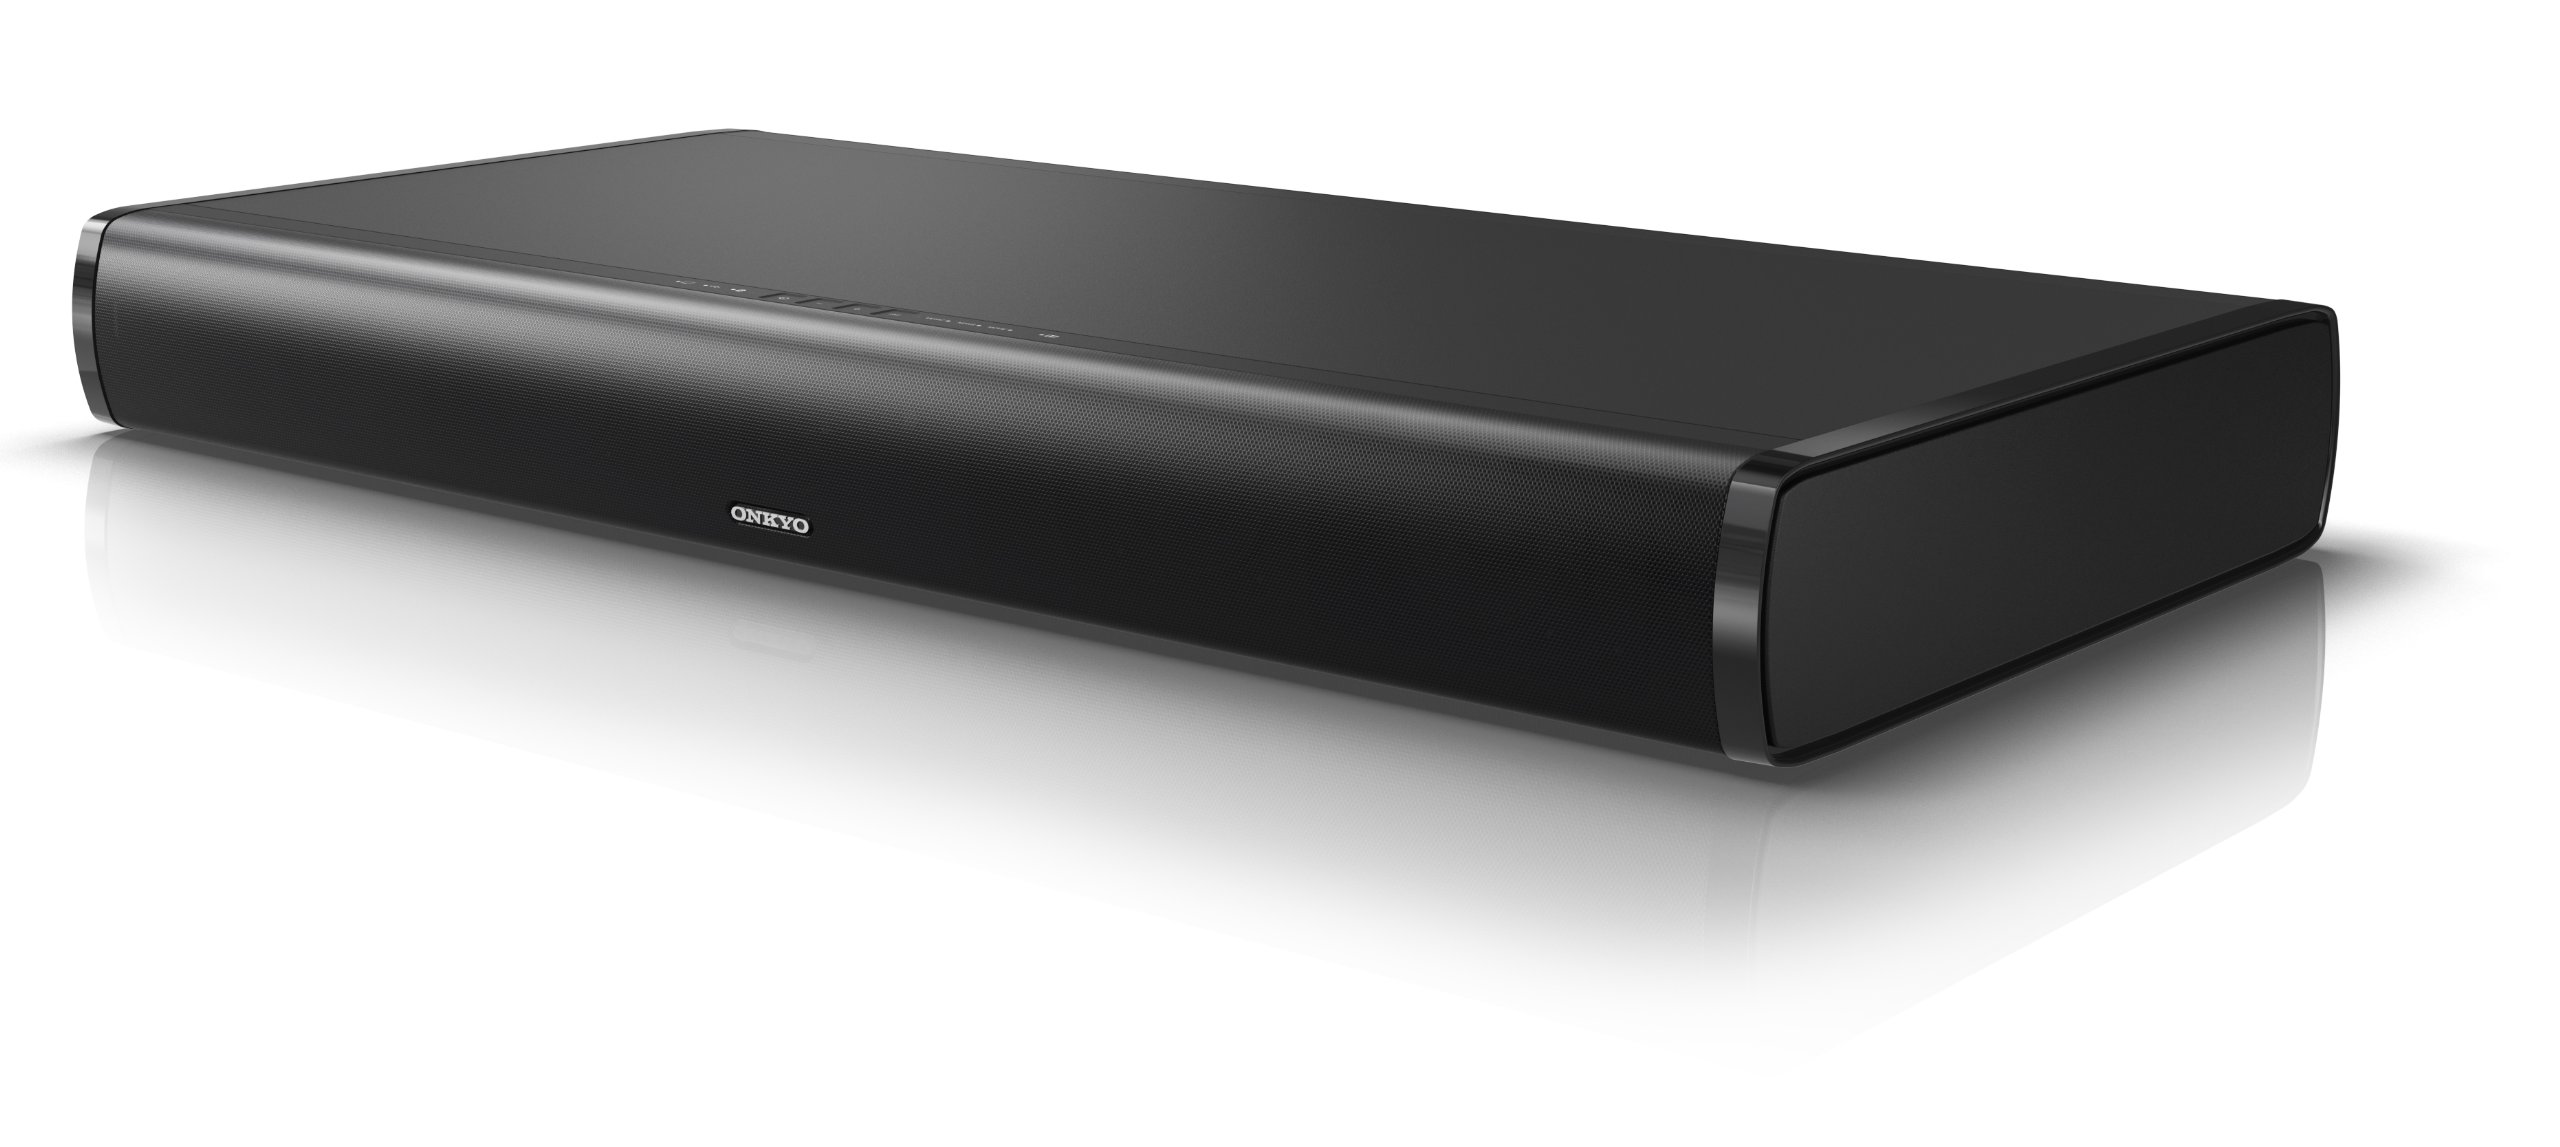 Onkyo LS-T10 6.1-Channel 3D Surround Base System